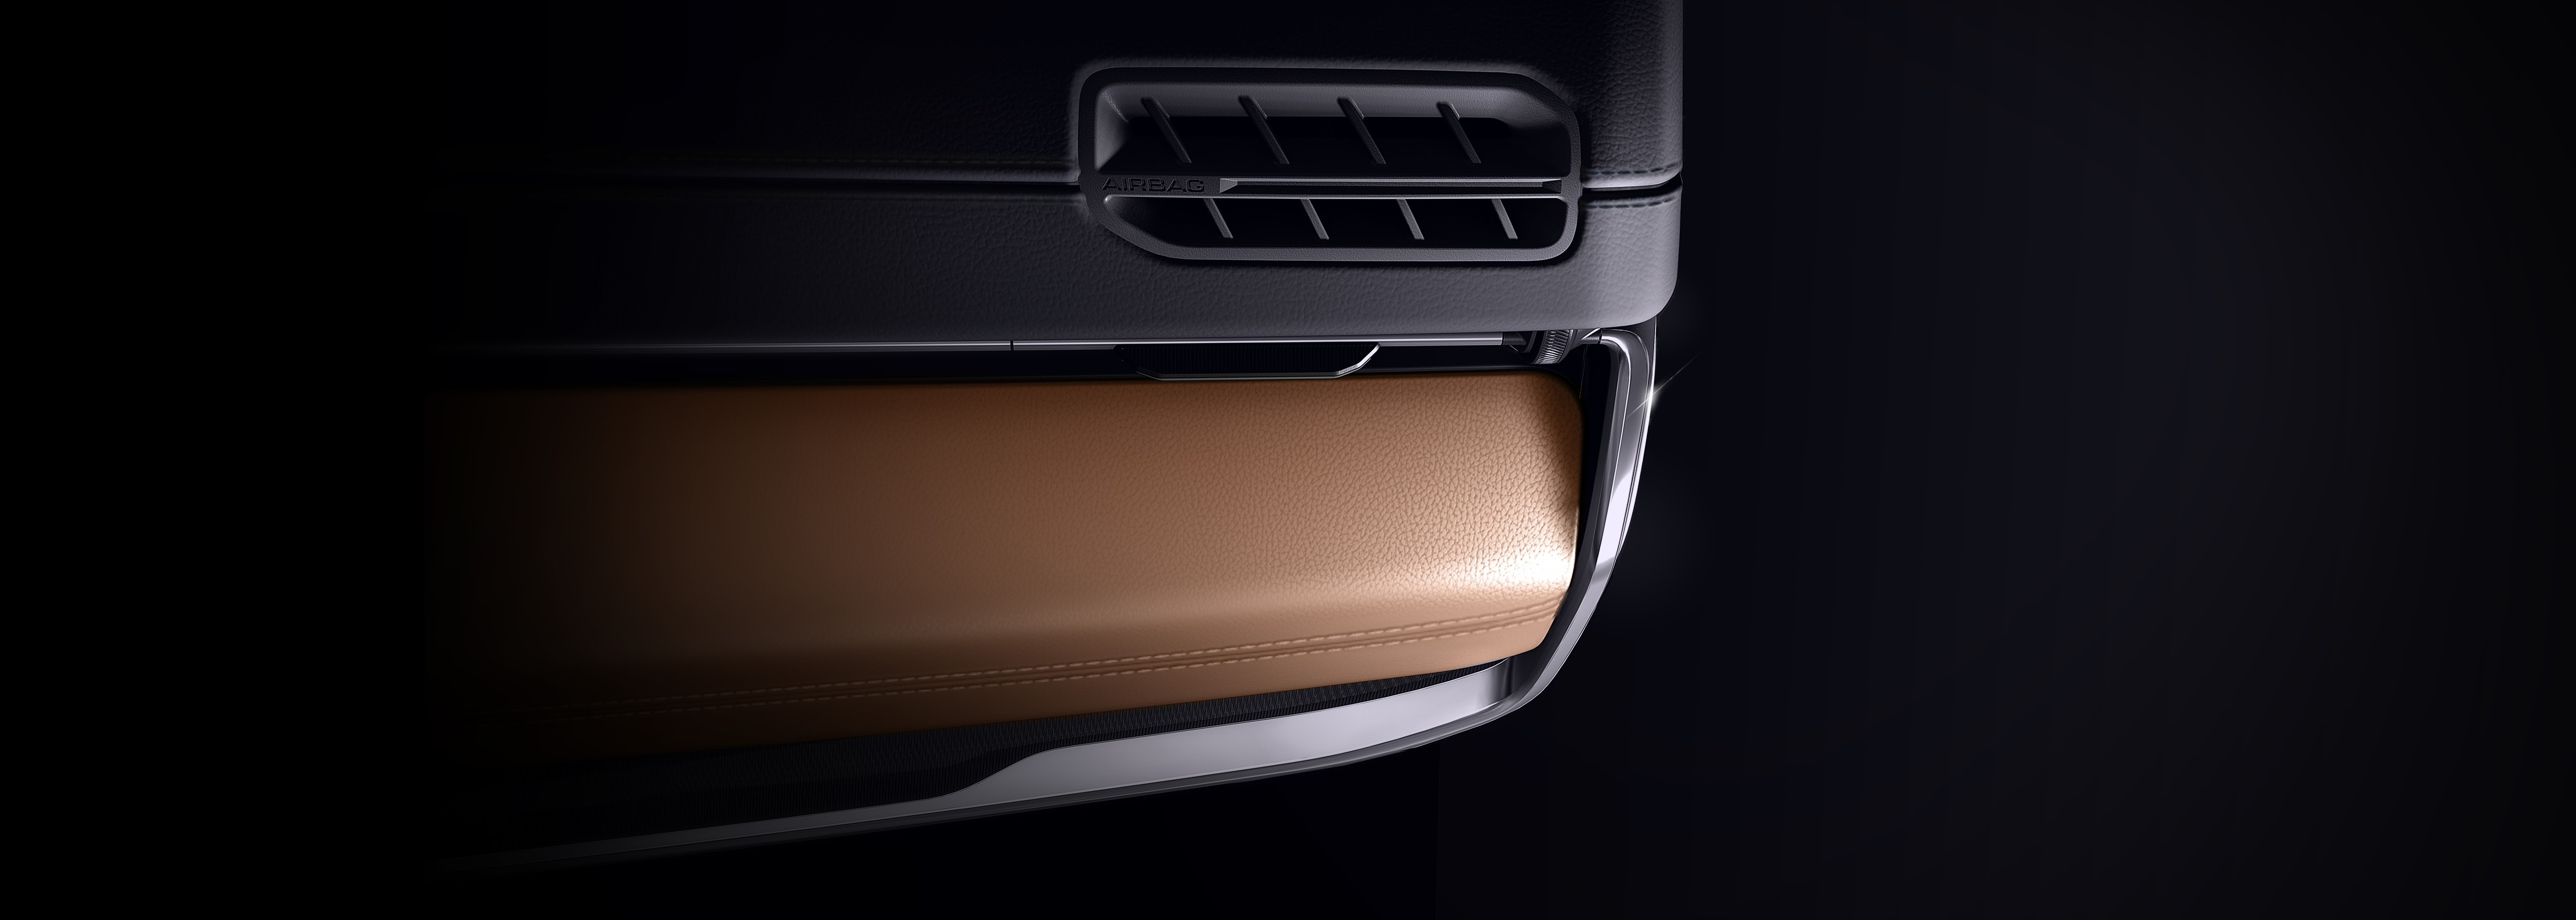 Jeep-Compass-Facelift-2021-teasers-4